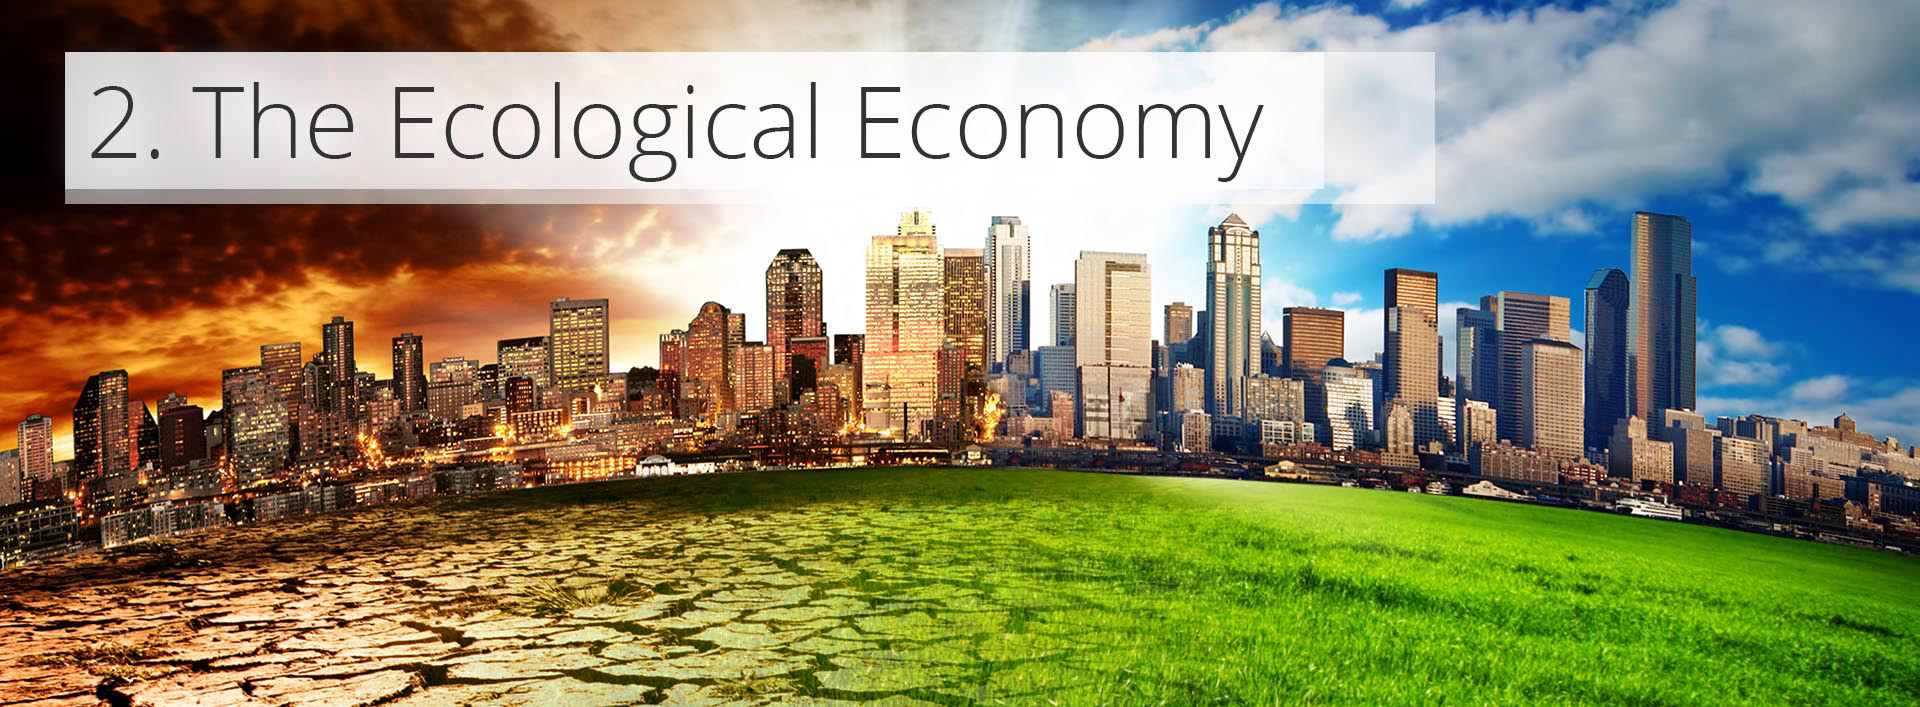 the ecological economy